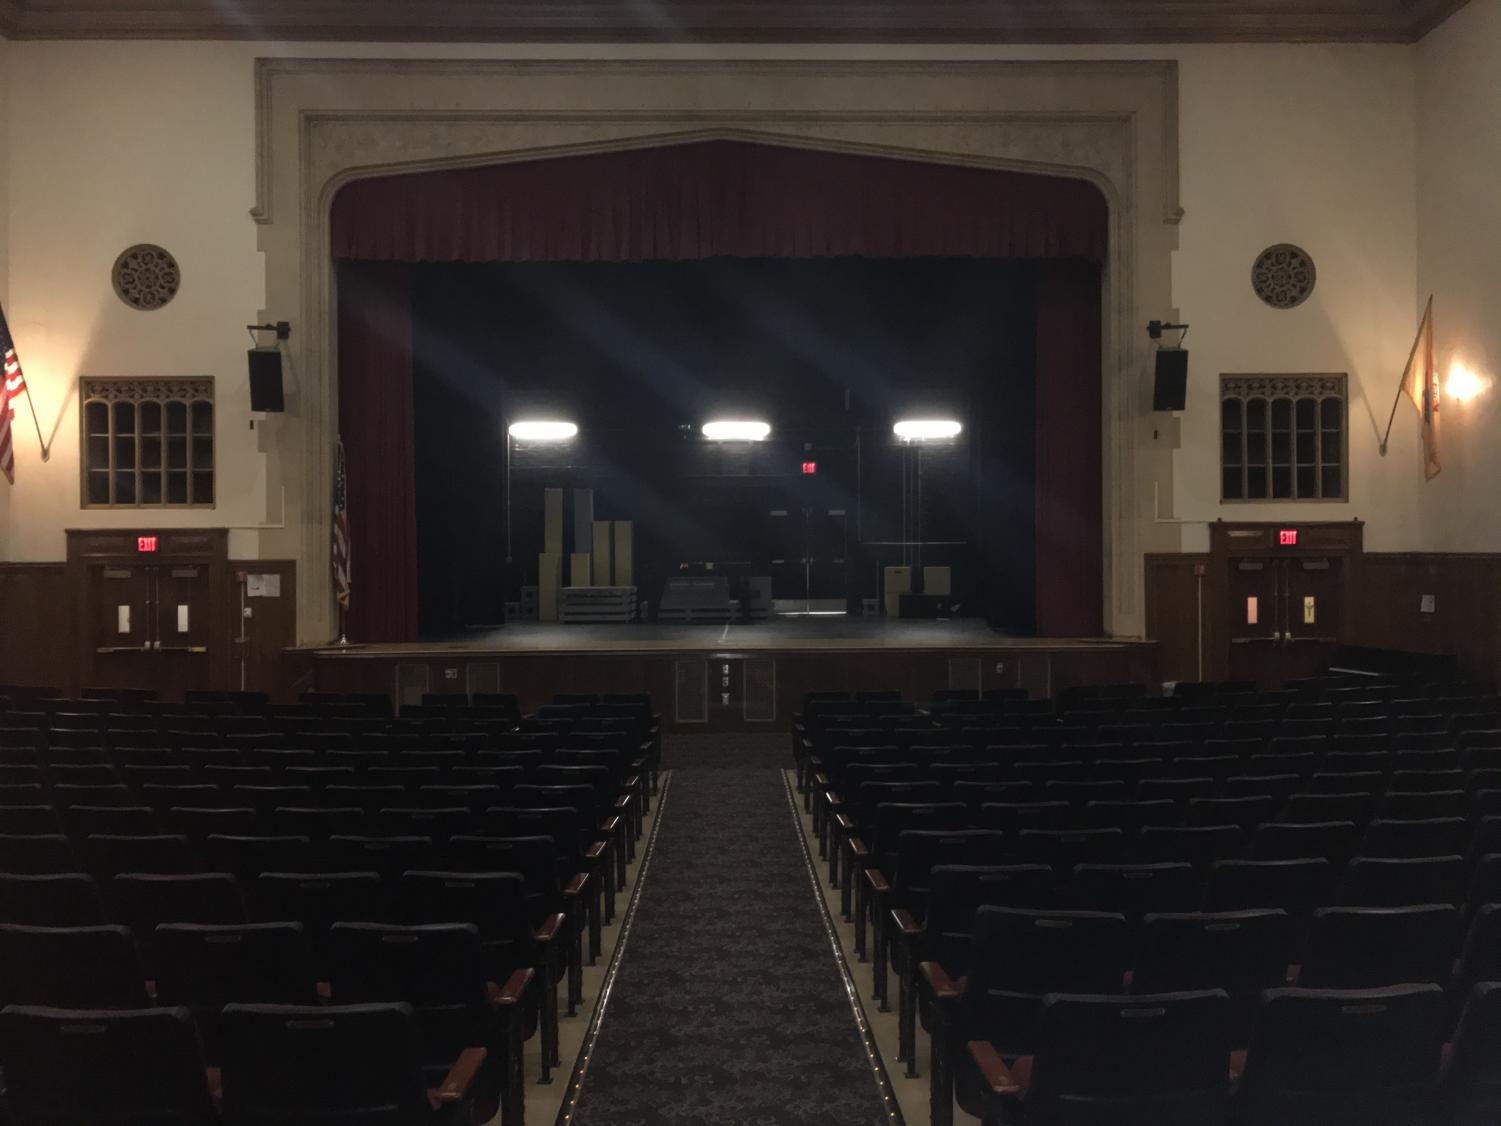 Set supplies on stage for fall theater production.